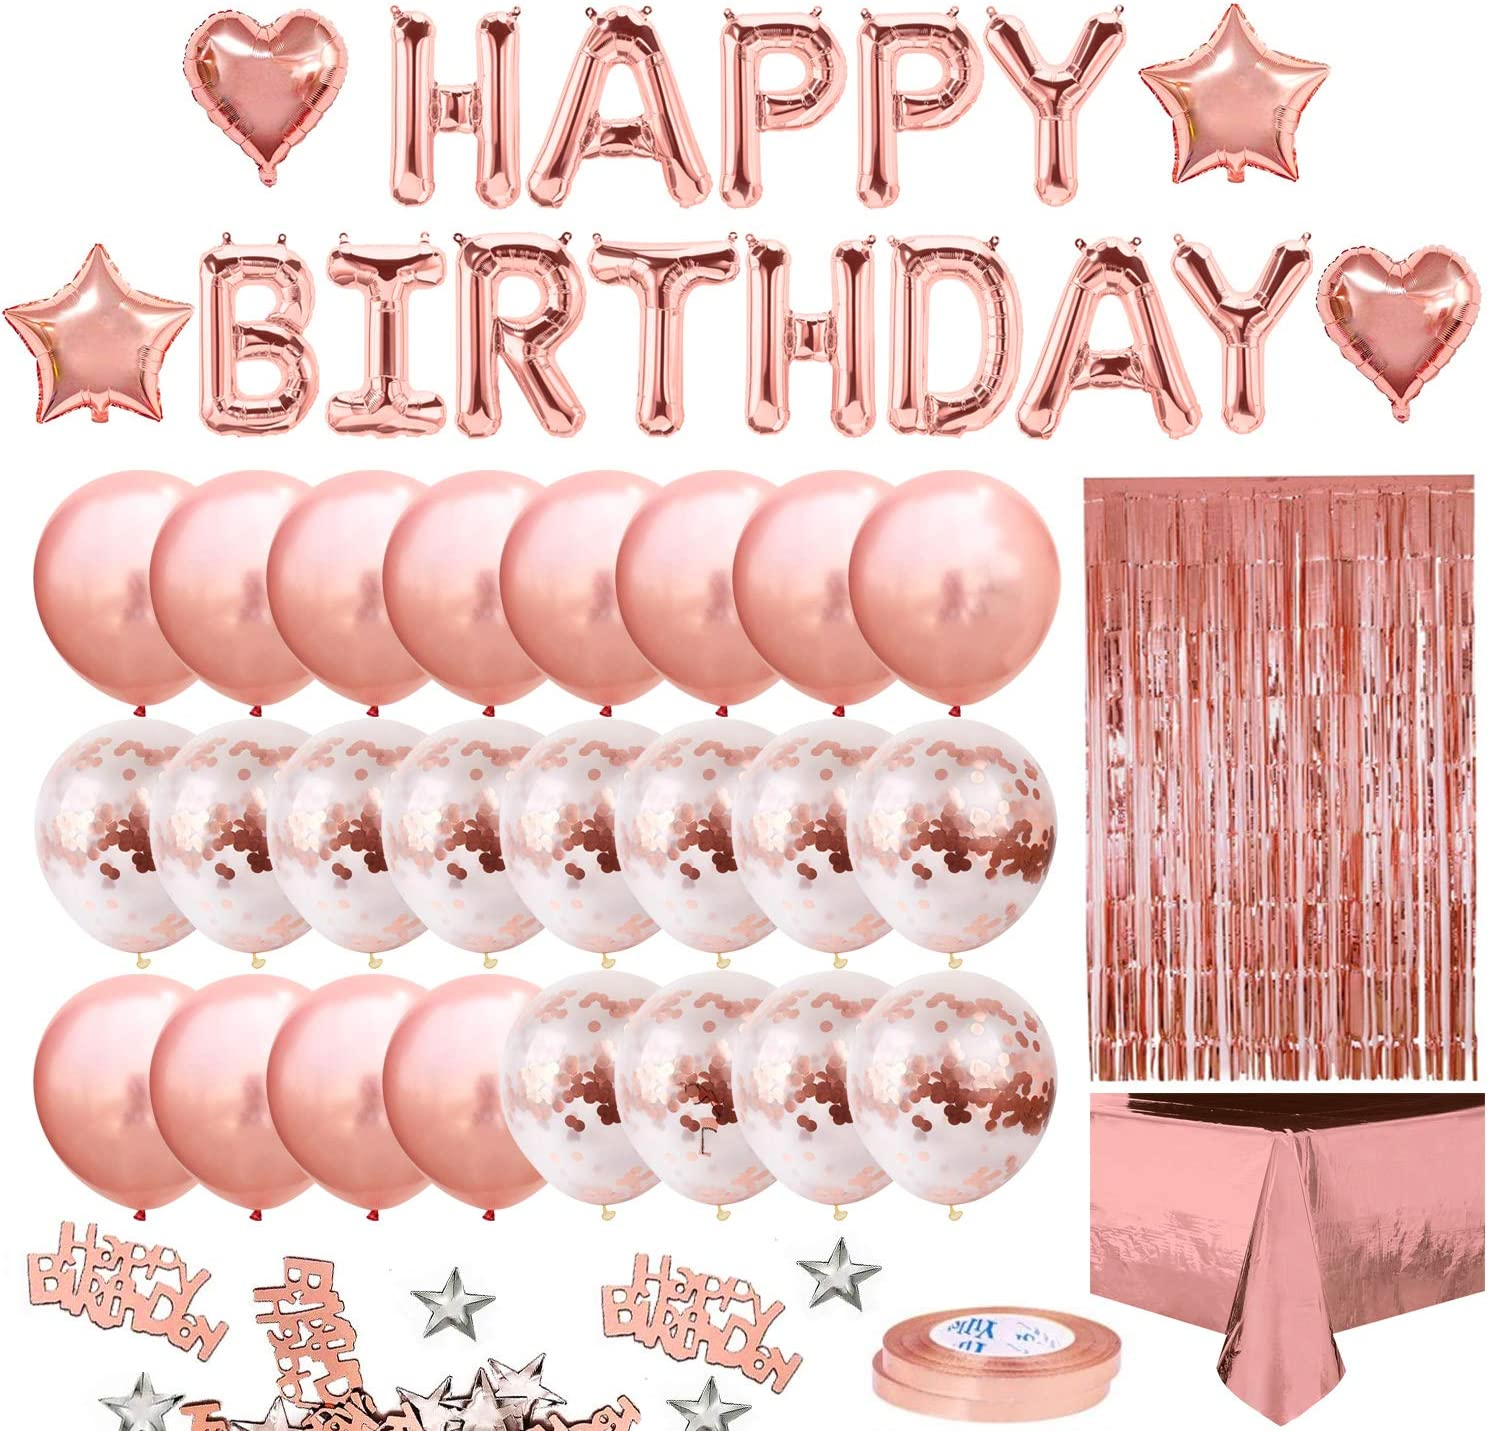 MOVINPE Rose Gold Birthday Party Decoration, Happy Birthday Banner, Rose Gold Fringe Curtain, Foil Tablecloth, Heart Star Foil Confetti Balloons, 10g Table Confetti for Women Girl Birthday Party